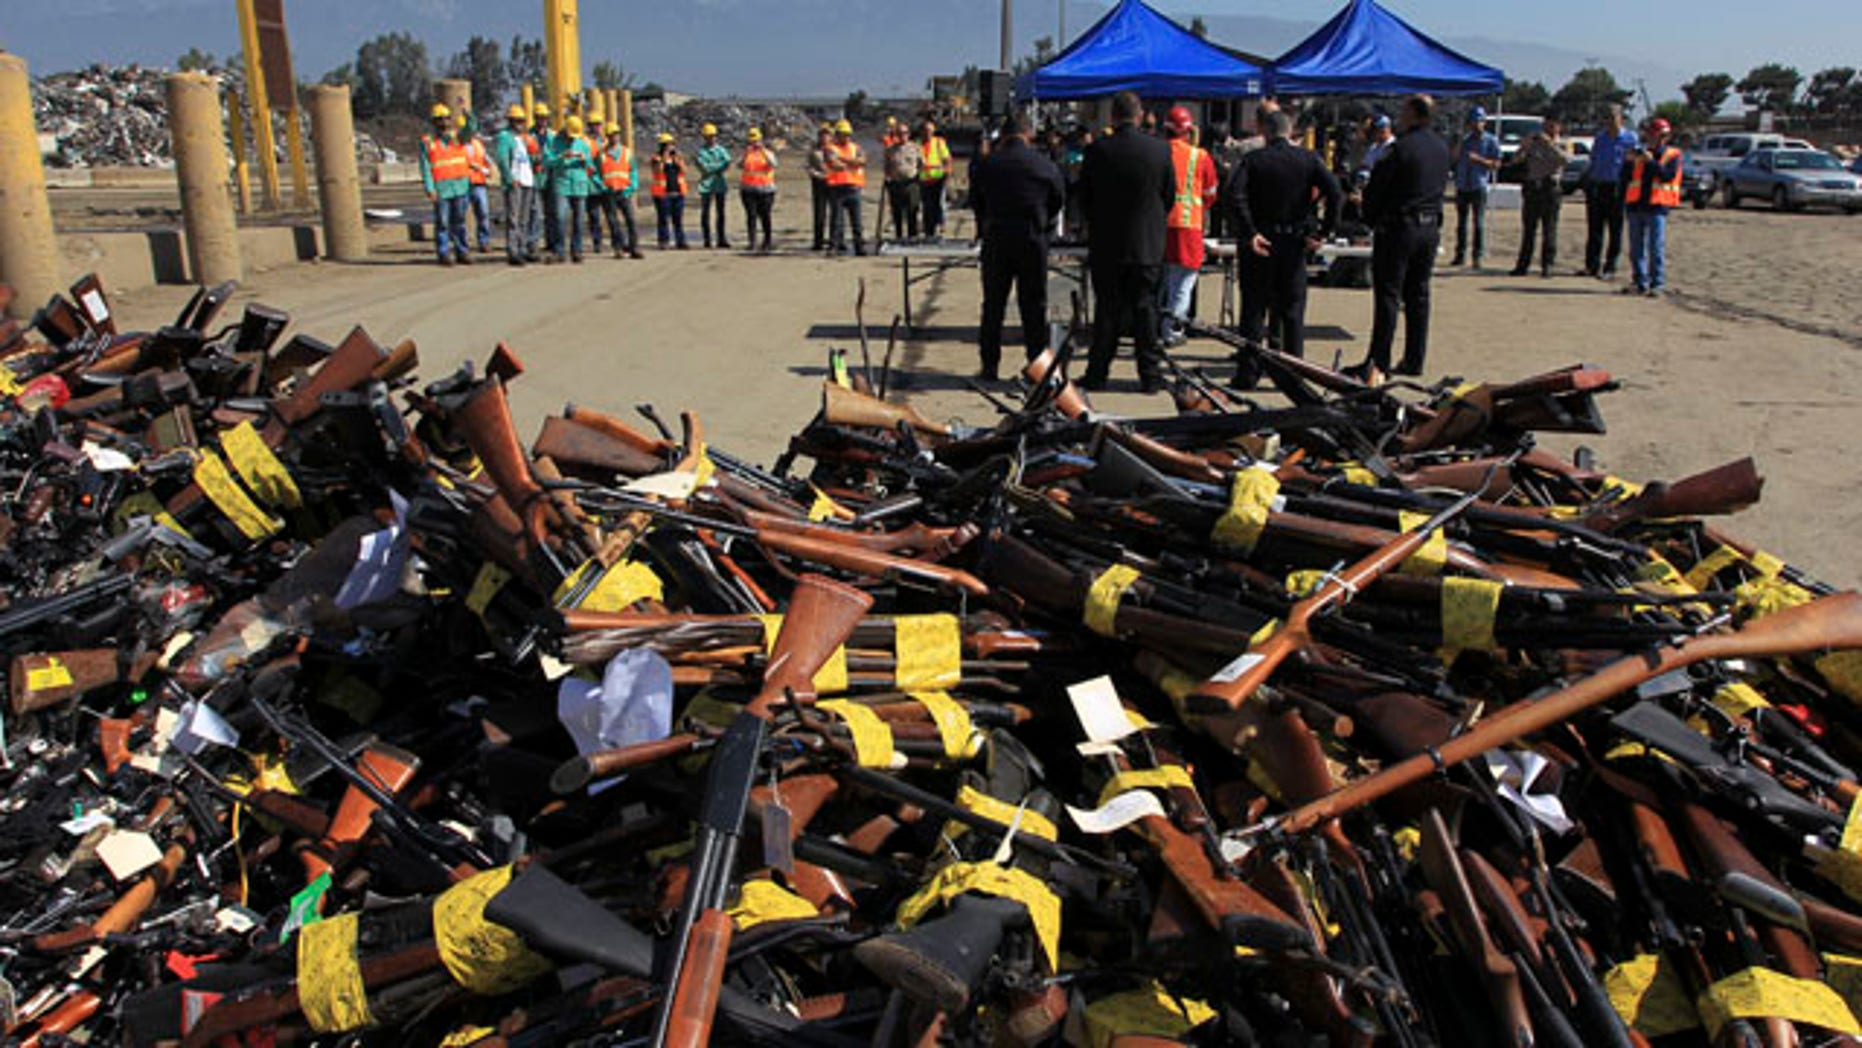 July 30, 2013: Guns to be melted lie in a pile near a news conference at the Los Angeles County Sheriff's Department's 20th annual Gun Melt at the Gerdau Steel Mill in Rancho Cucamonga, California.